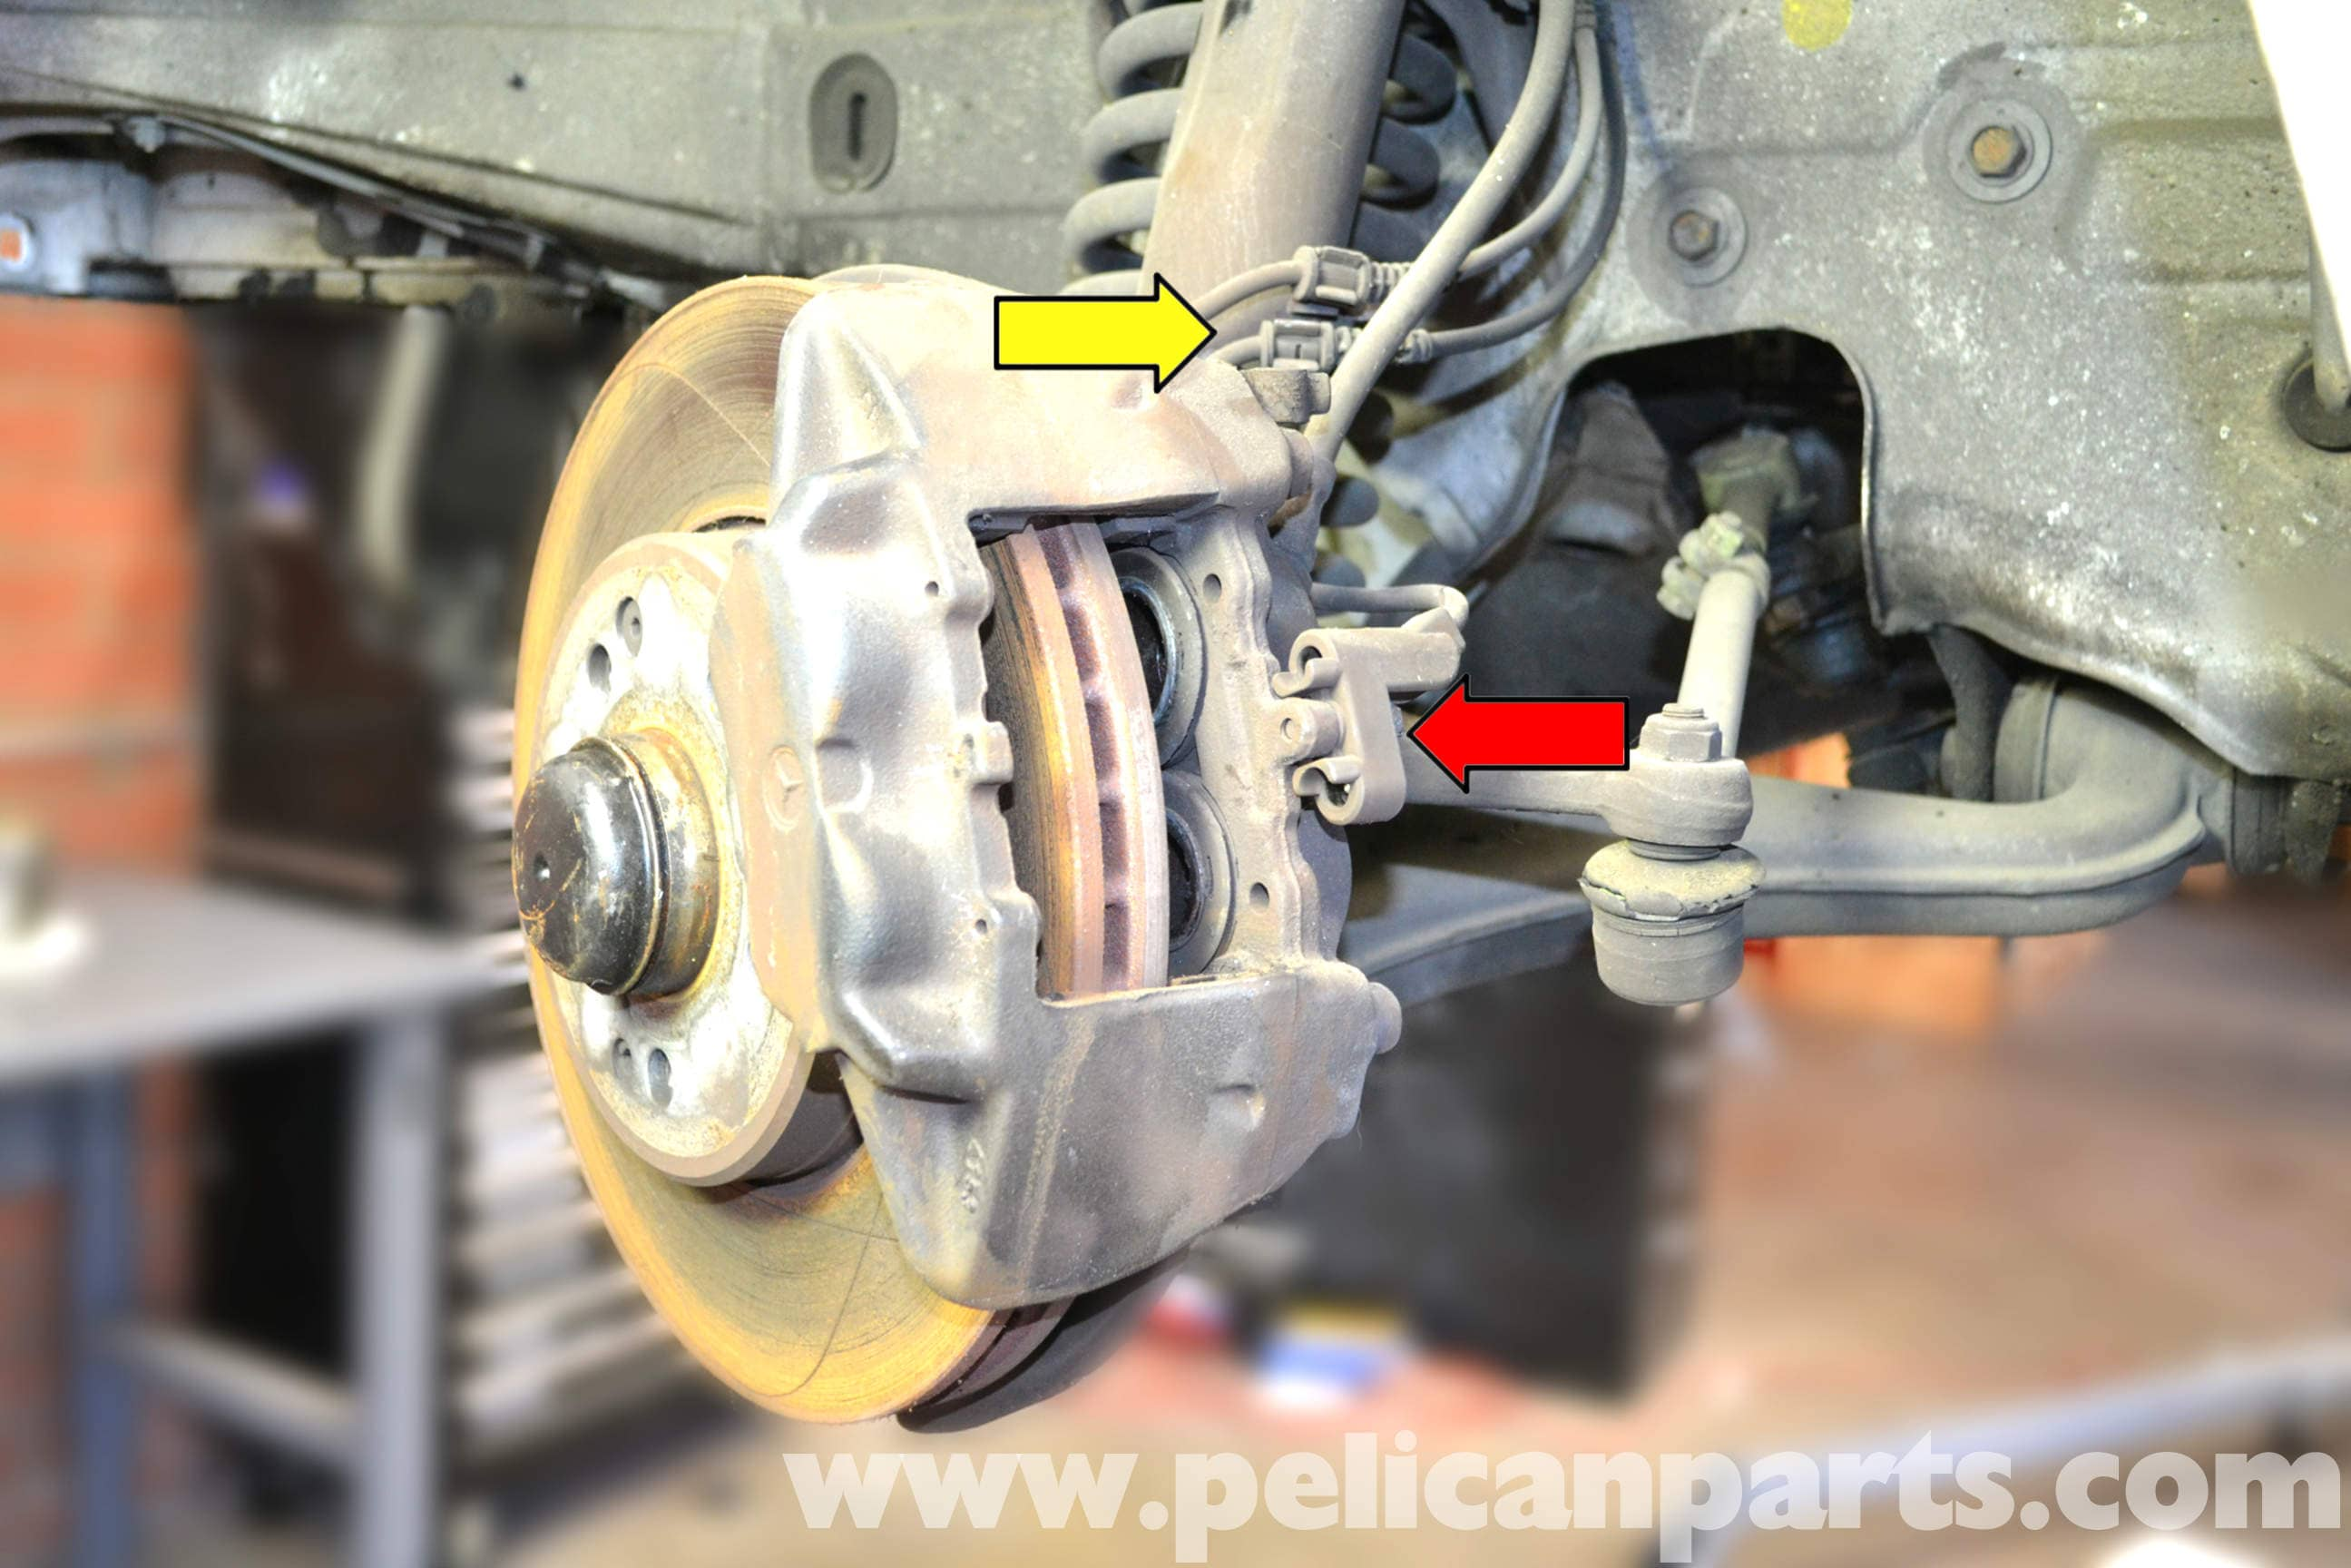 Front brake calipers: description, installation and recommendations 85